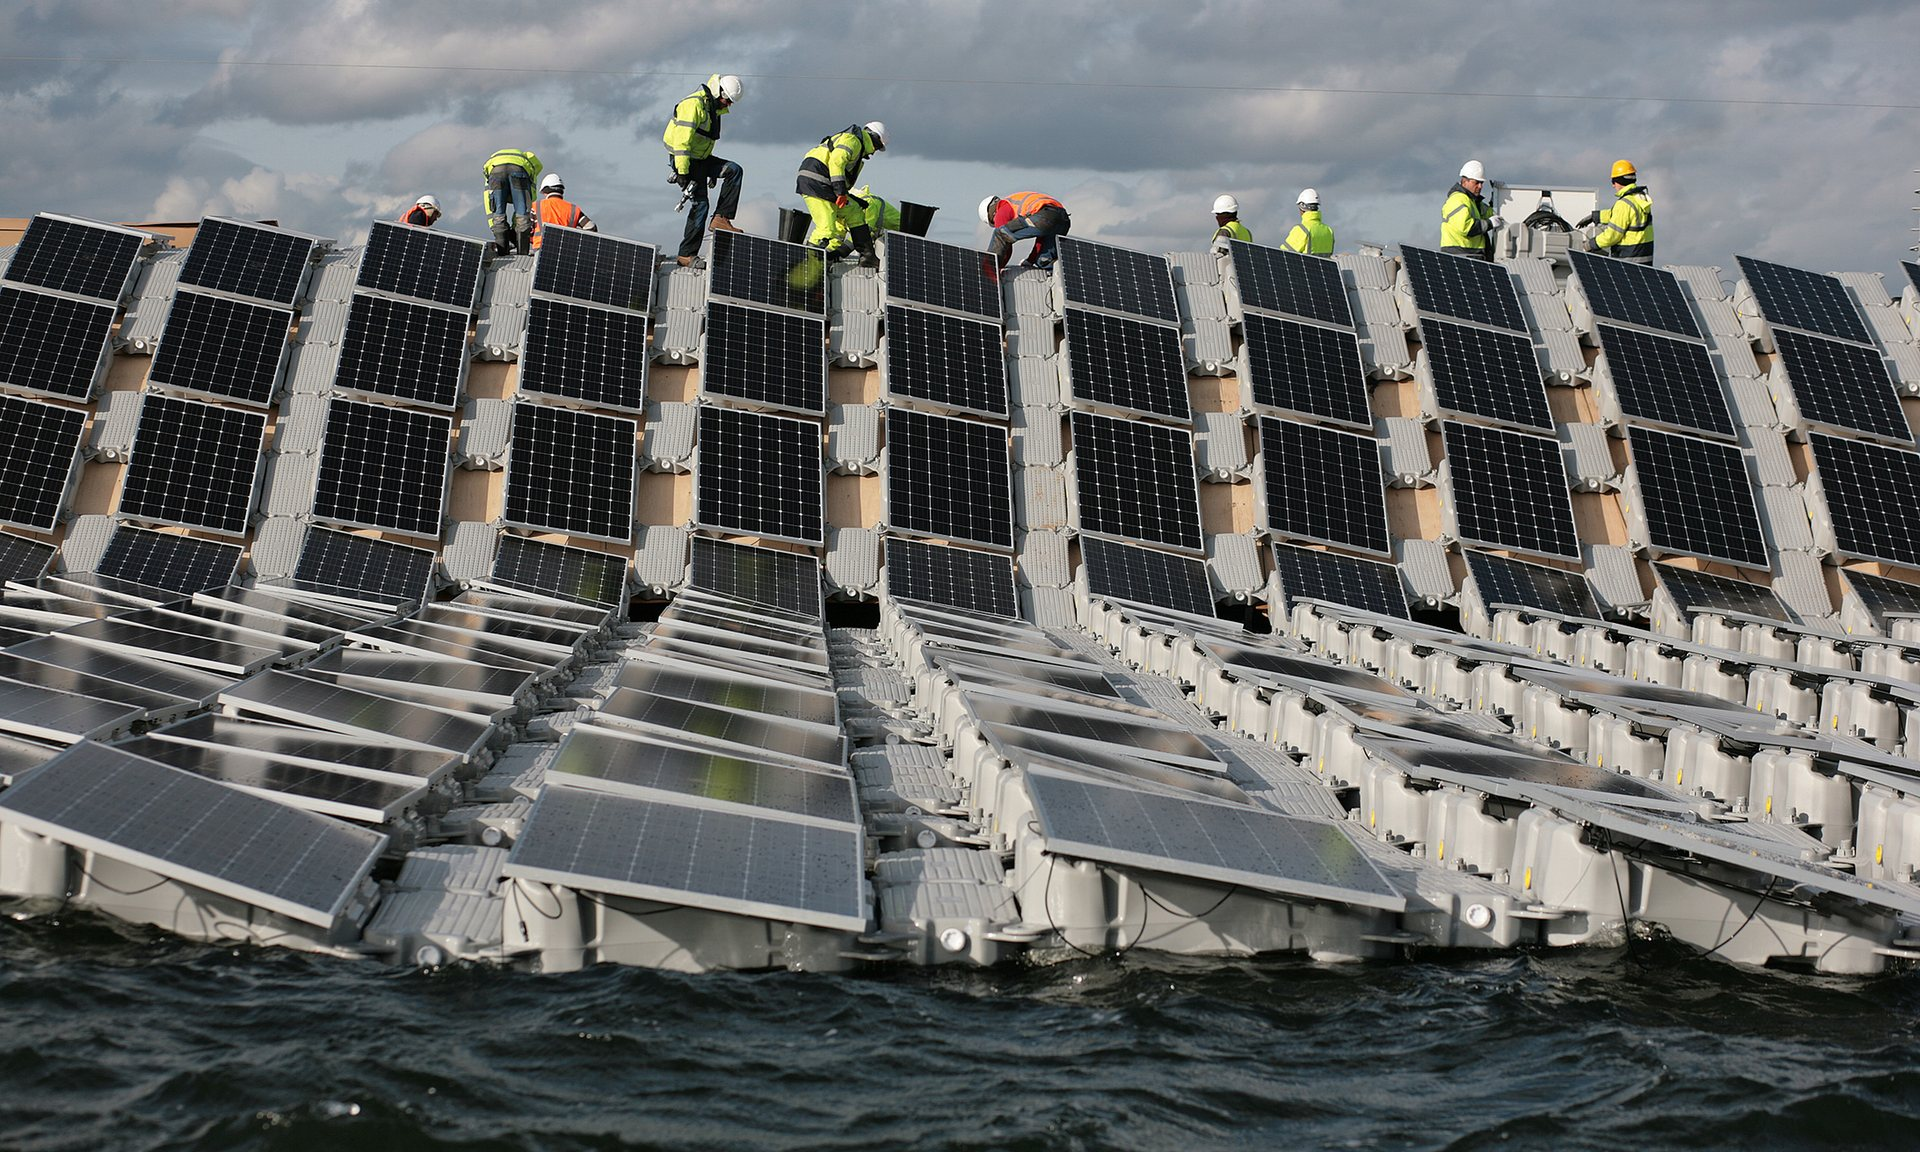 The world's largest floating solar farm near Heathrow will produce about 6.3MW